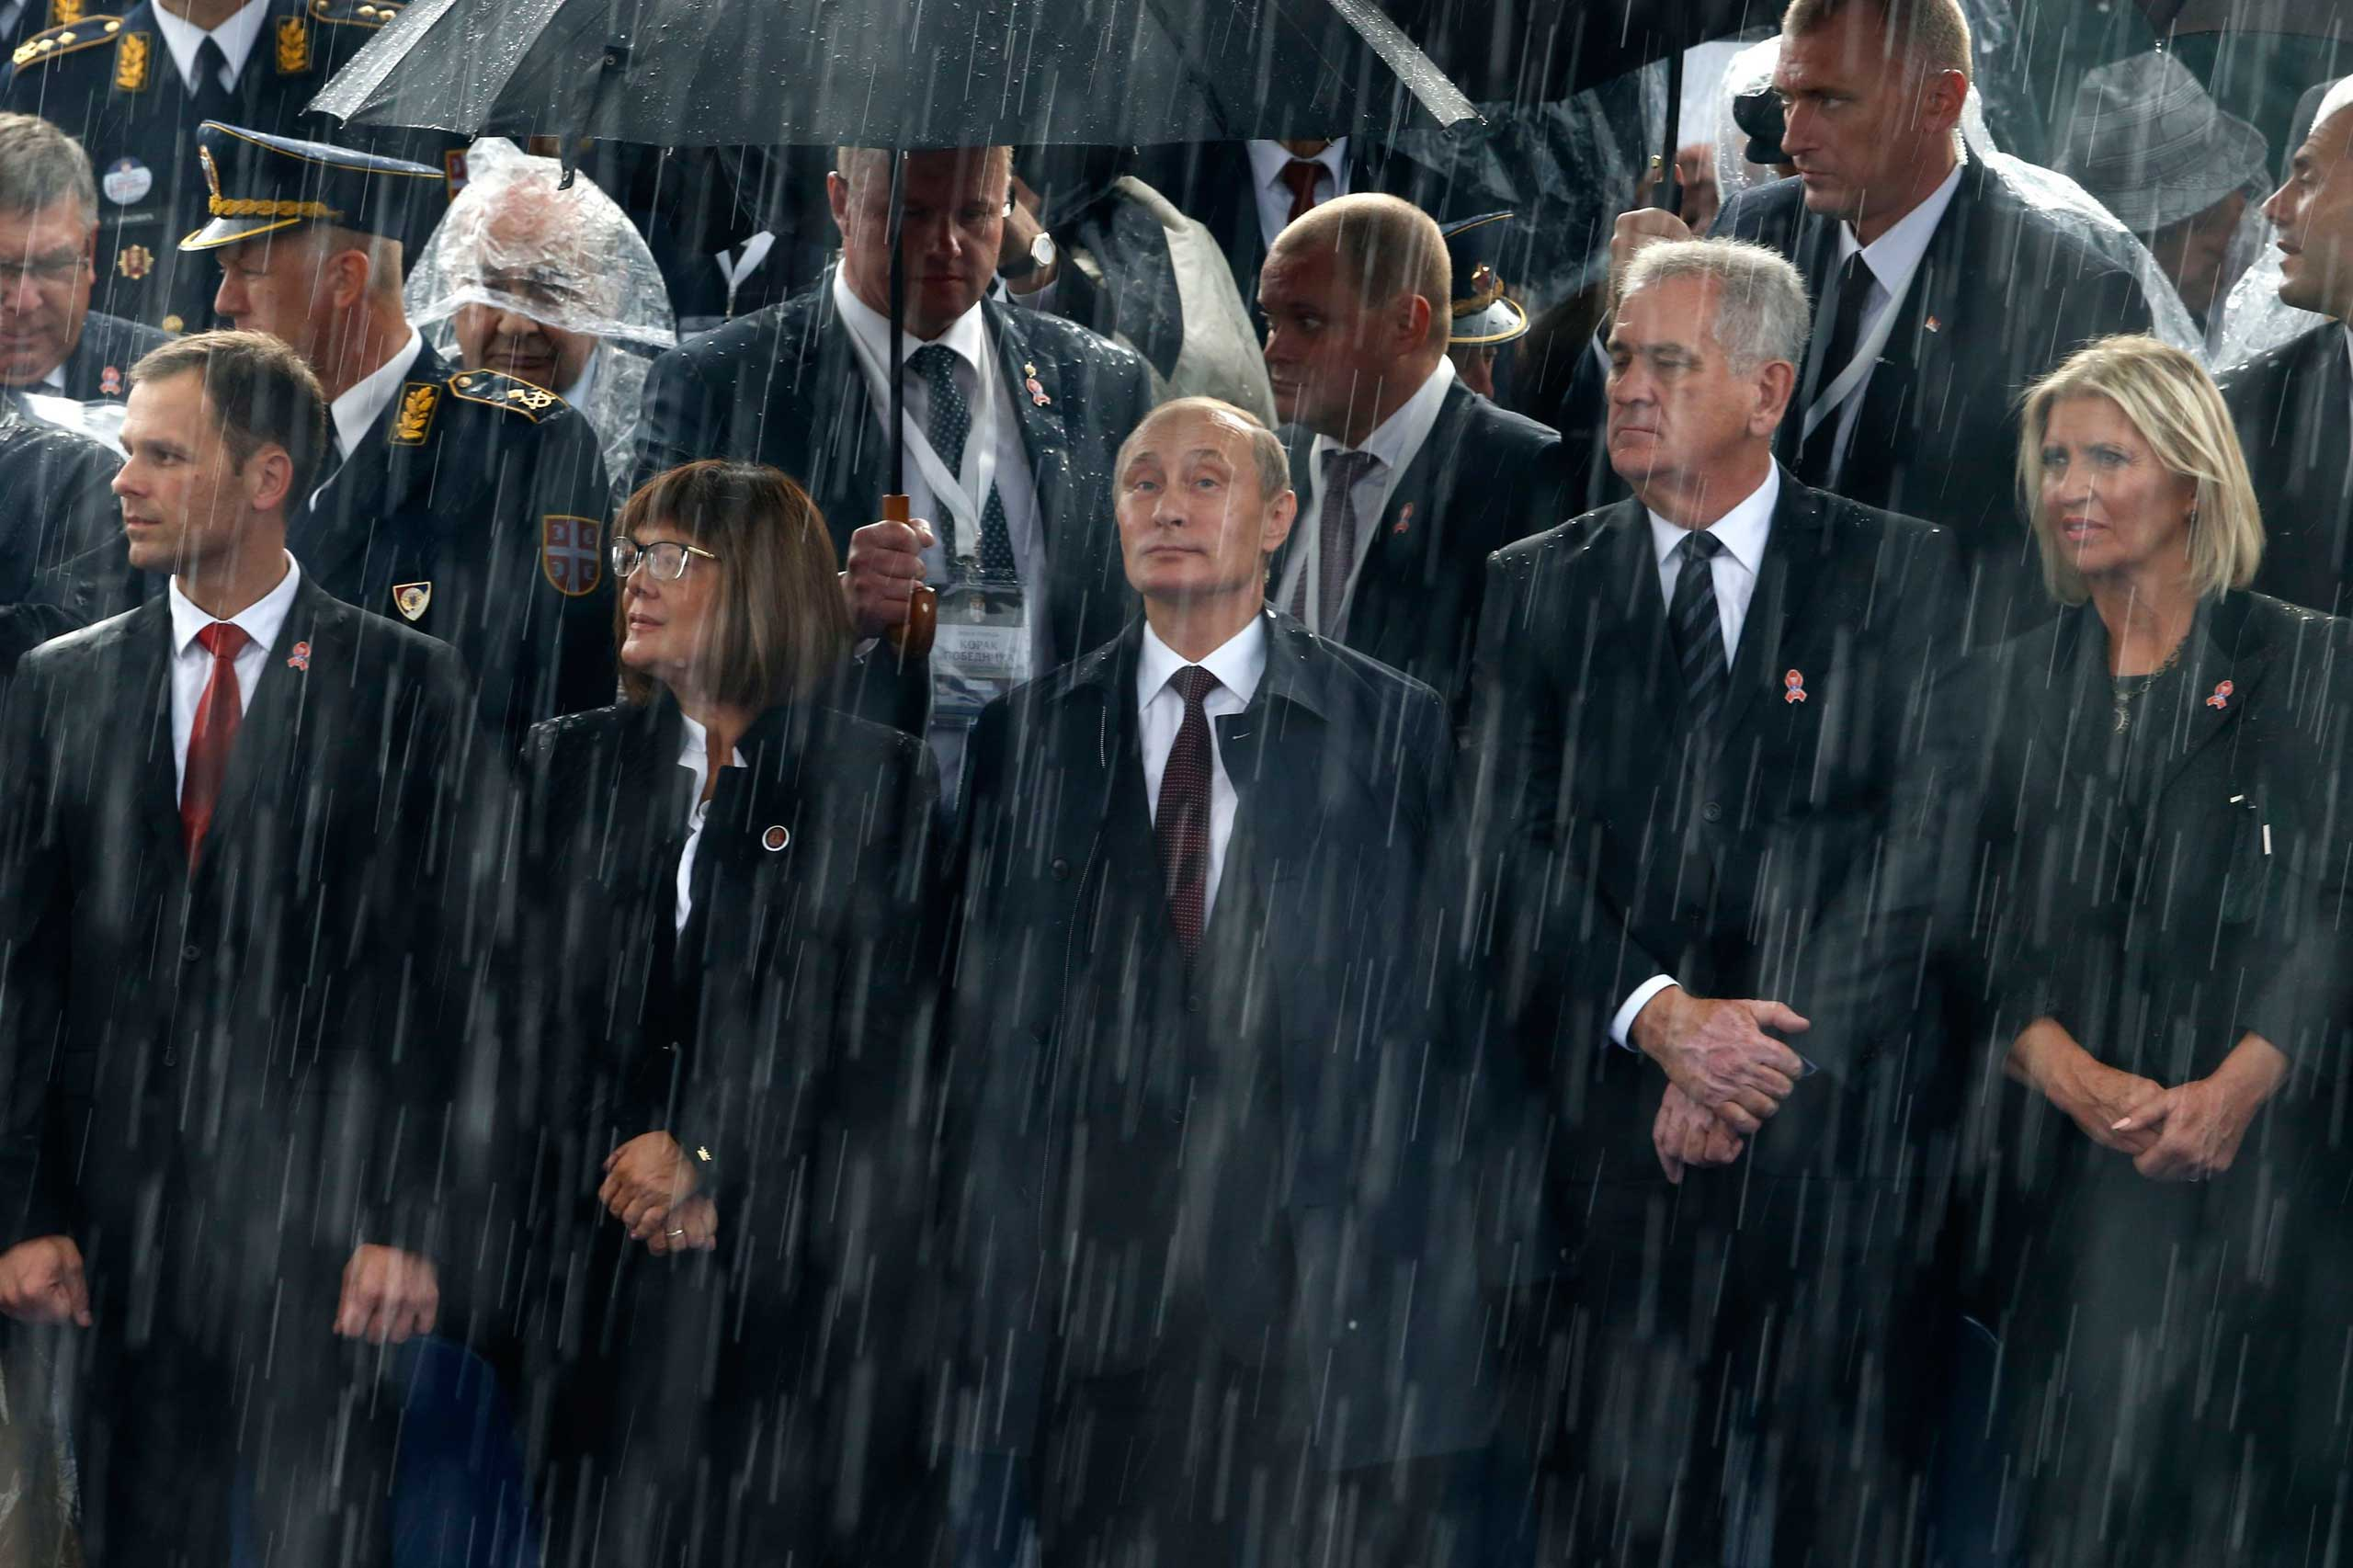 Russian President Vladimir Putin and Serbian President Tomislav Nikolic attend a military parade to mark 70 years since the city's liberation by the Red Army in Belgrade, Oct. 16, 2014.